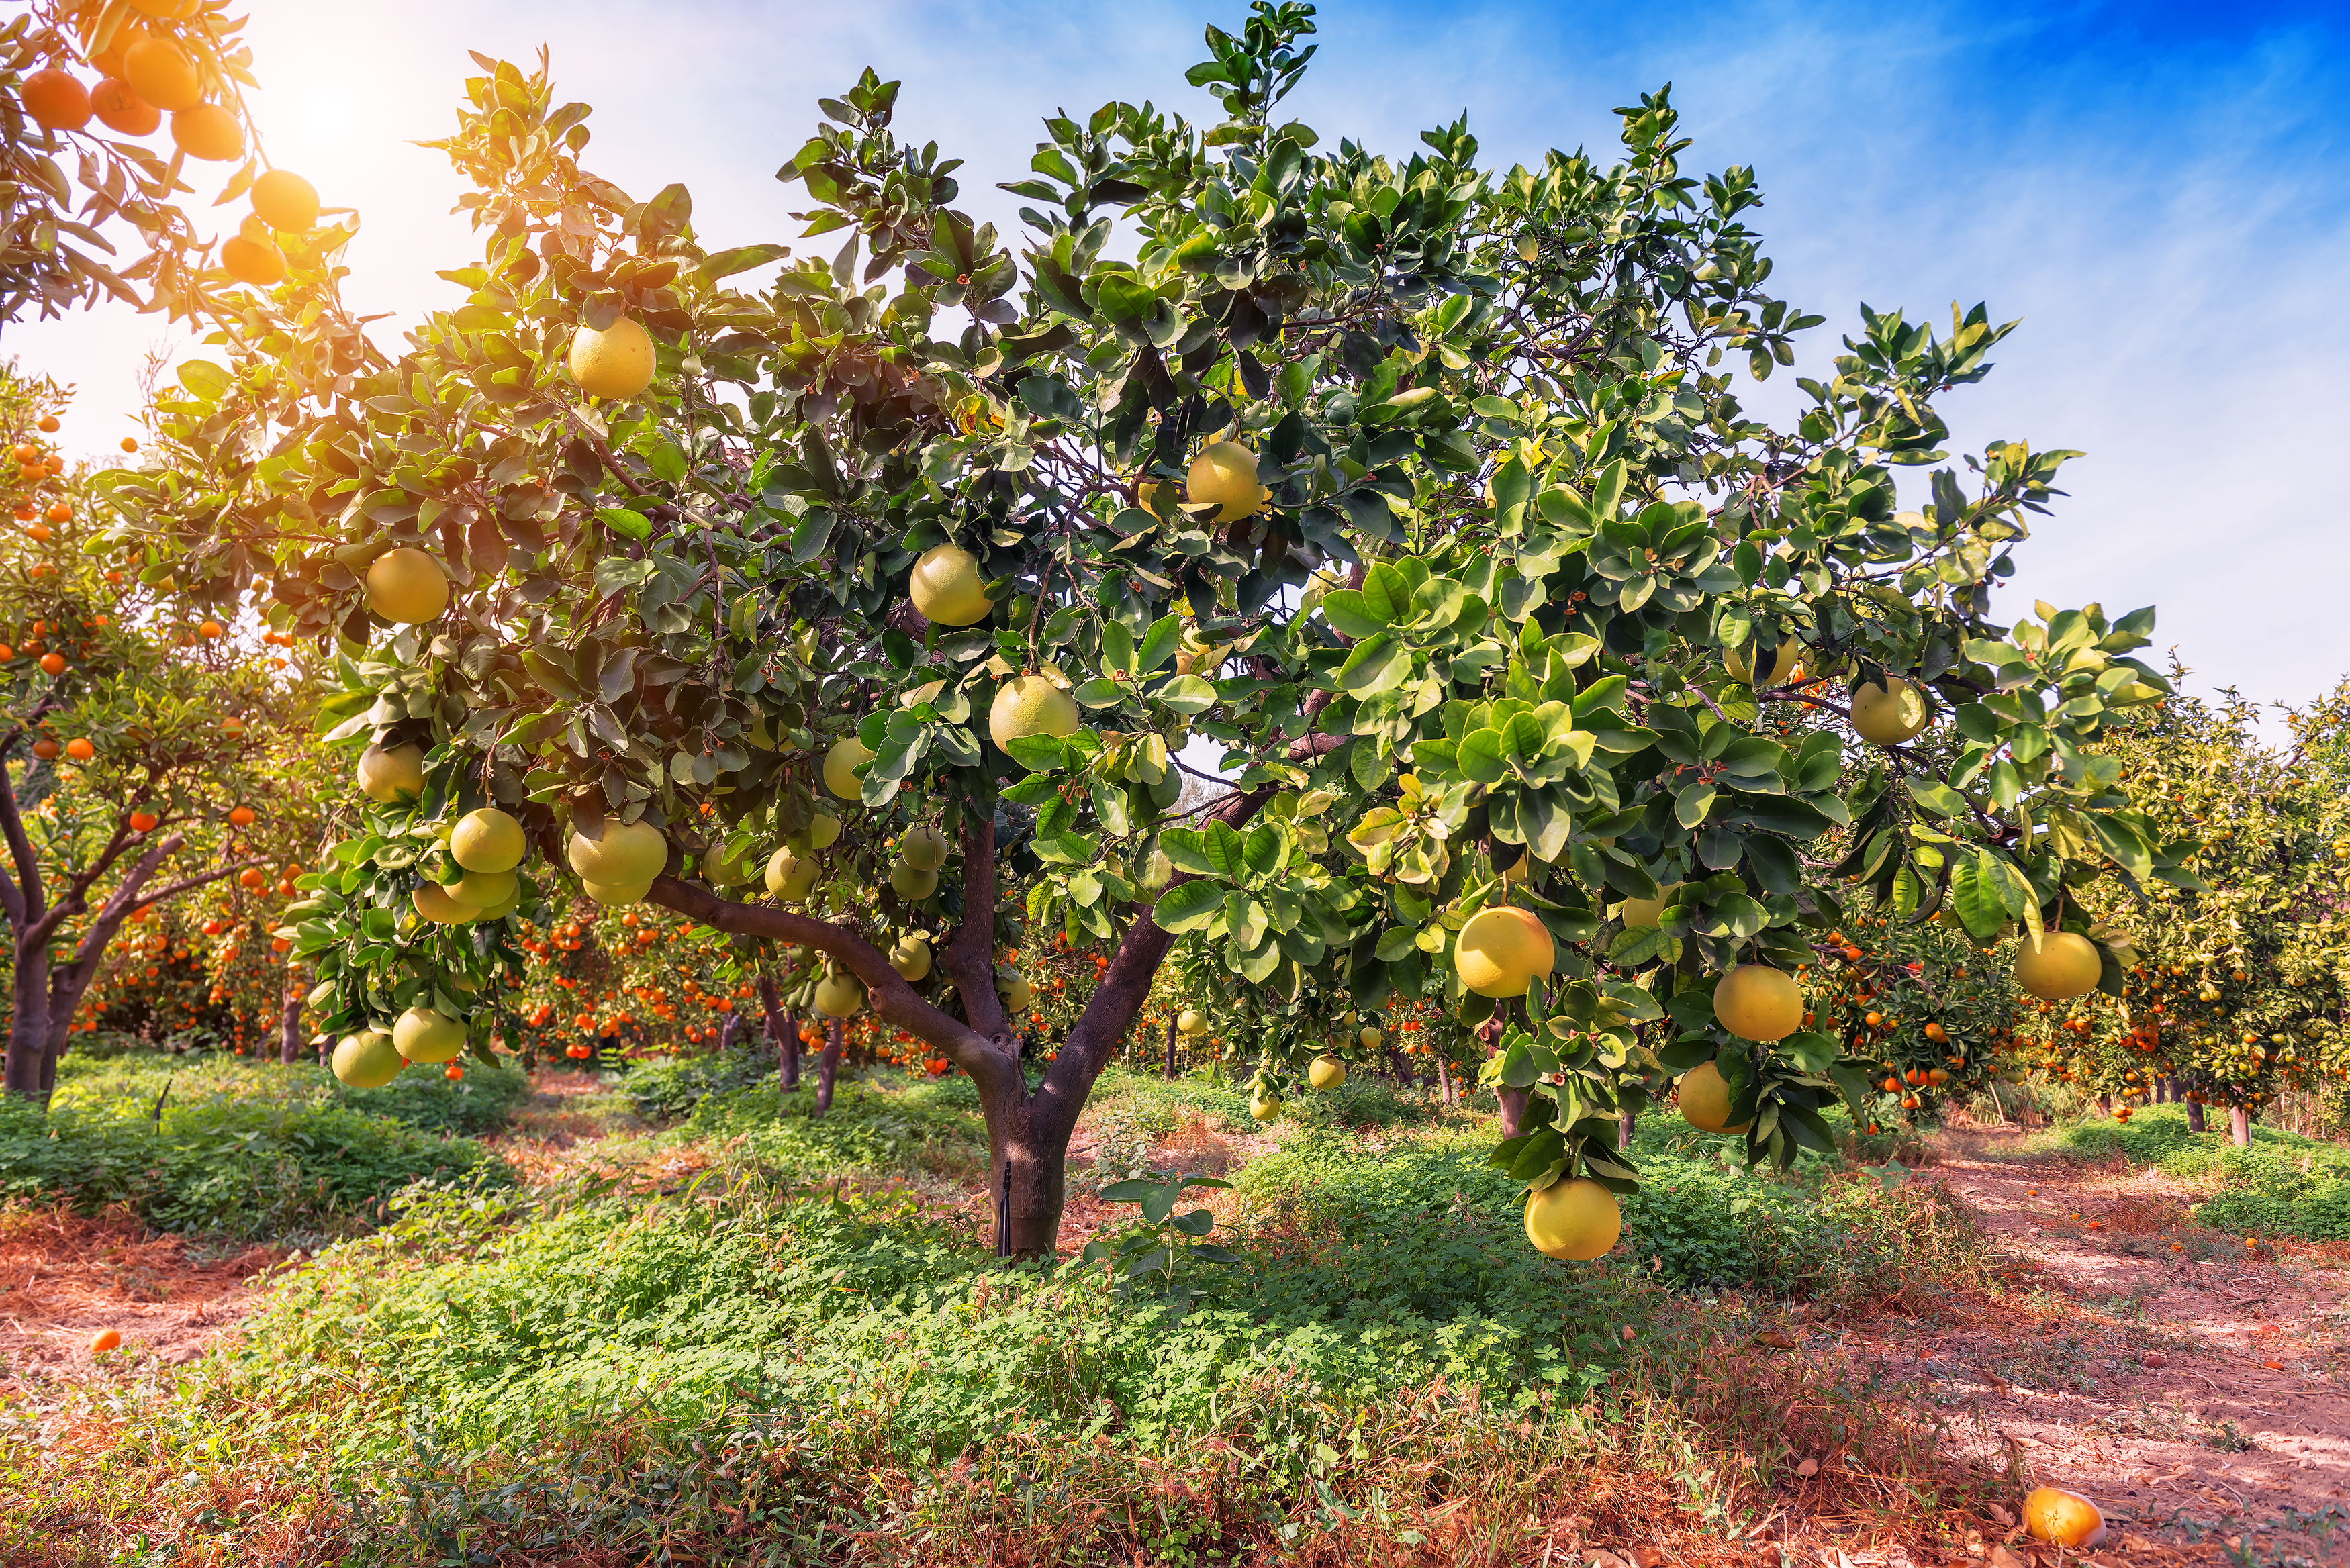 How to Take Care of a Lemon Tree in the Winter | Home Guides